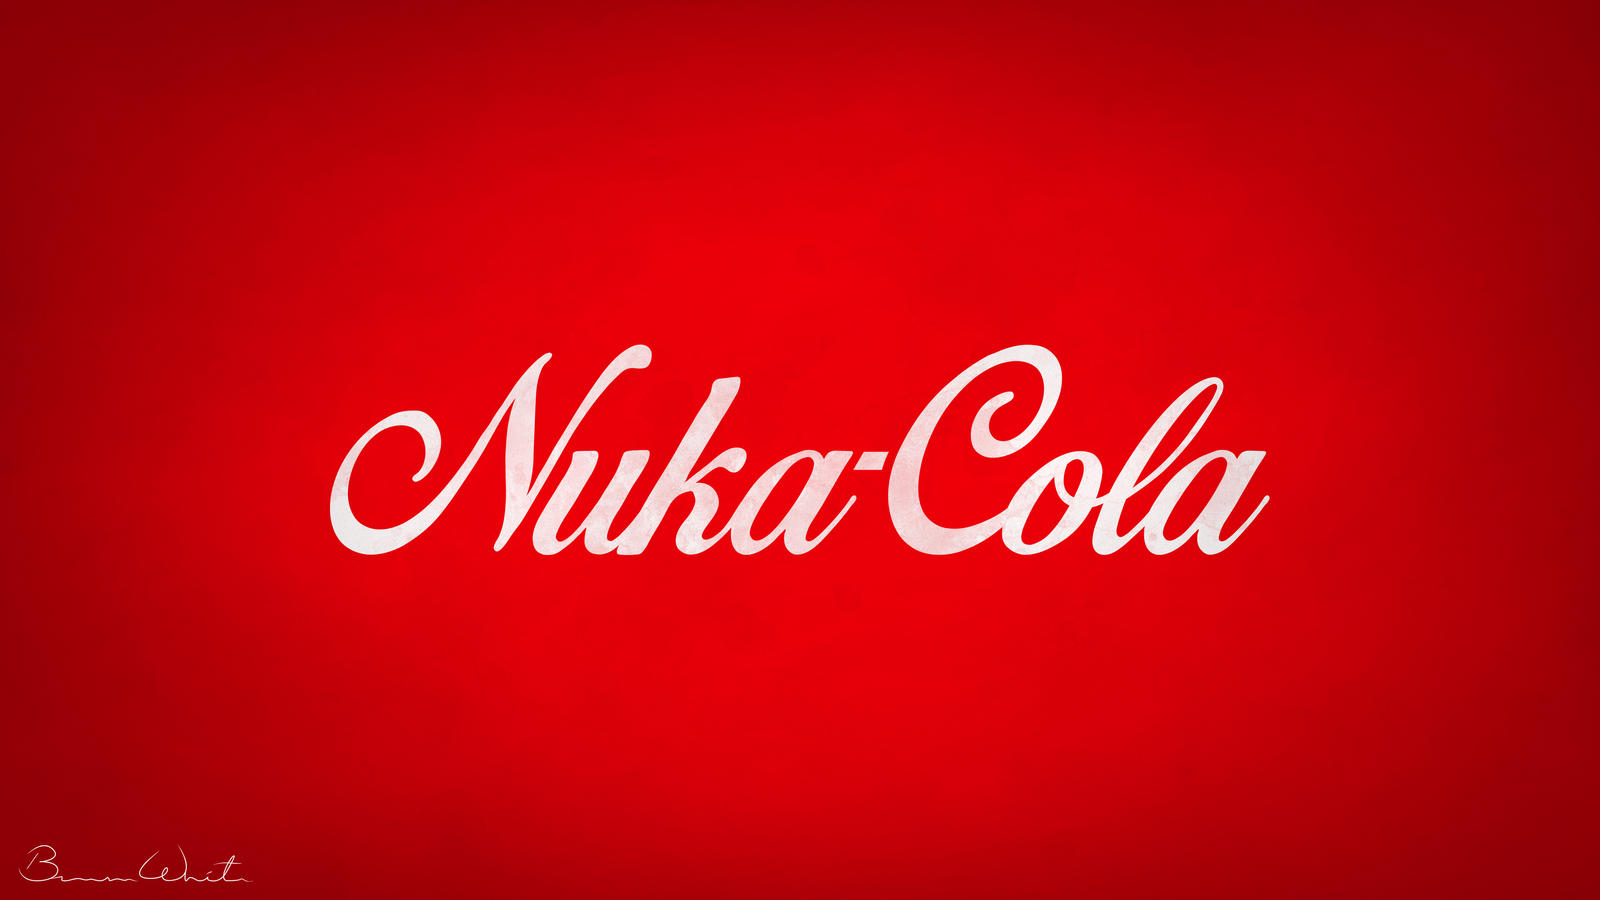 Nuka Cola Logo Redesign Wallpaper By Polygonbronson On Deviantart